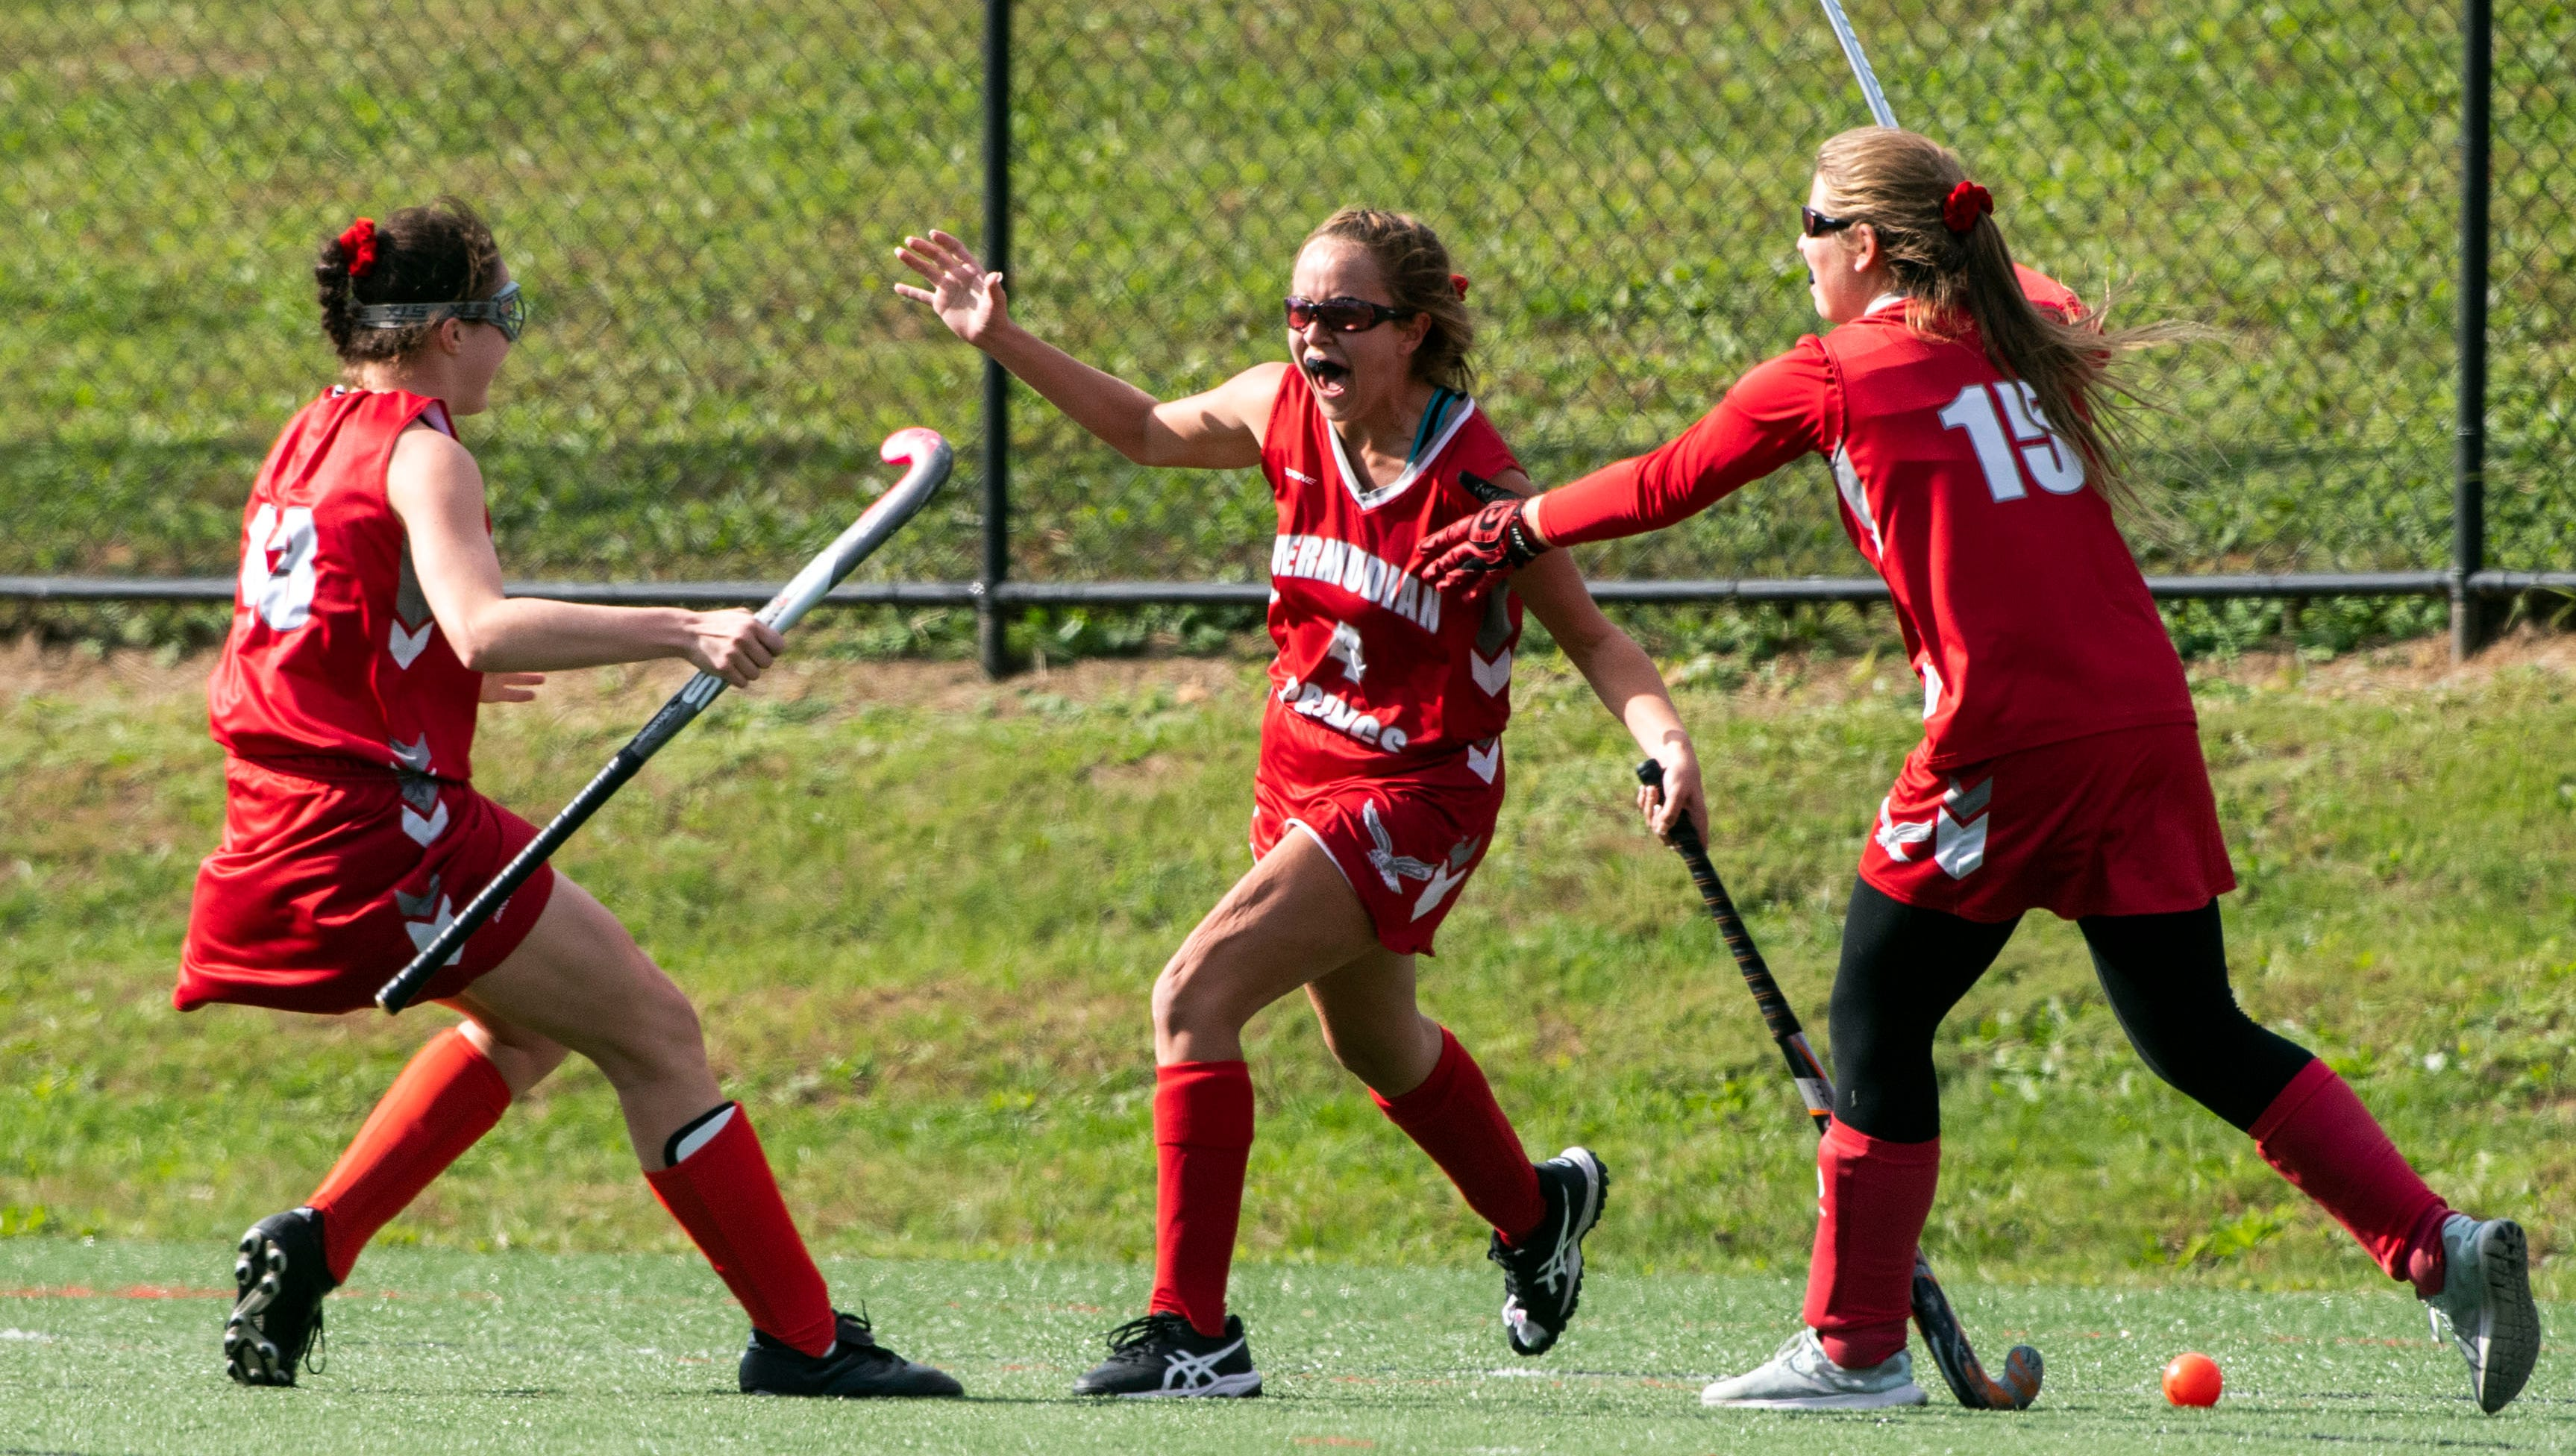 Bermudian Springs' Skyler West (4) celebrates her overtime winning goal with teammates, Saturday, Oct. 20, 2018. The Bermudian Springs Eagles made a big comeback to beat the Central York Panthers in overtime, 3-2, earning the YAIAA championship. Saturday, Oct. 20, 2018. The Bermudian Springs Eagles made a big comeback to beat the Central York Panthers in overtime, 3-2, earning the YAIAA championship.